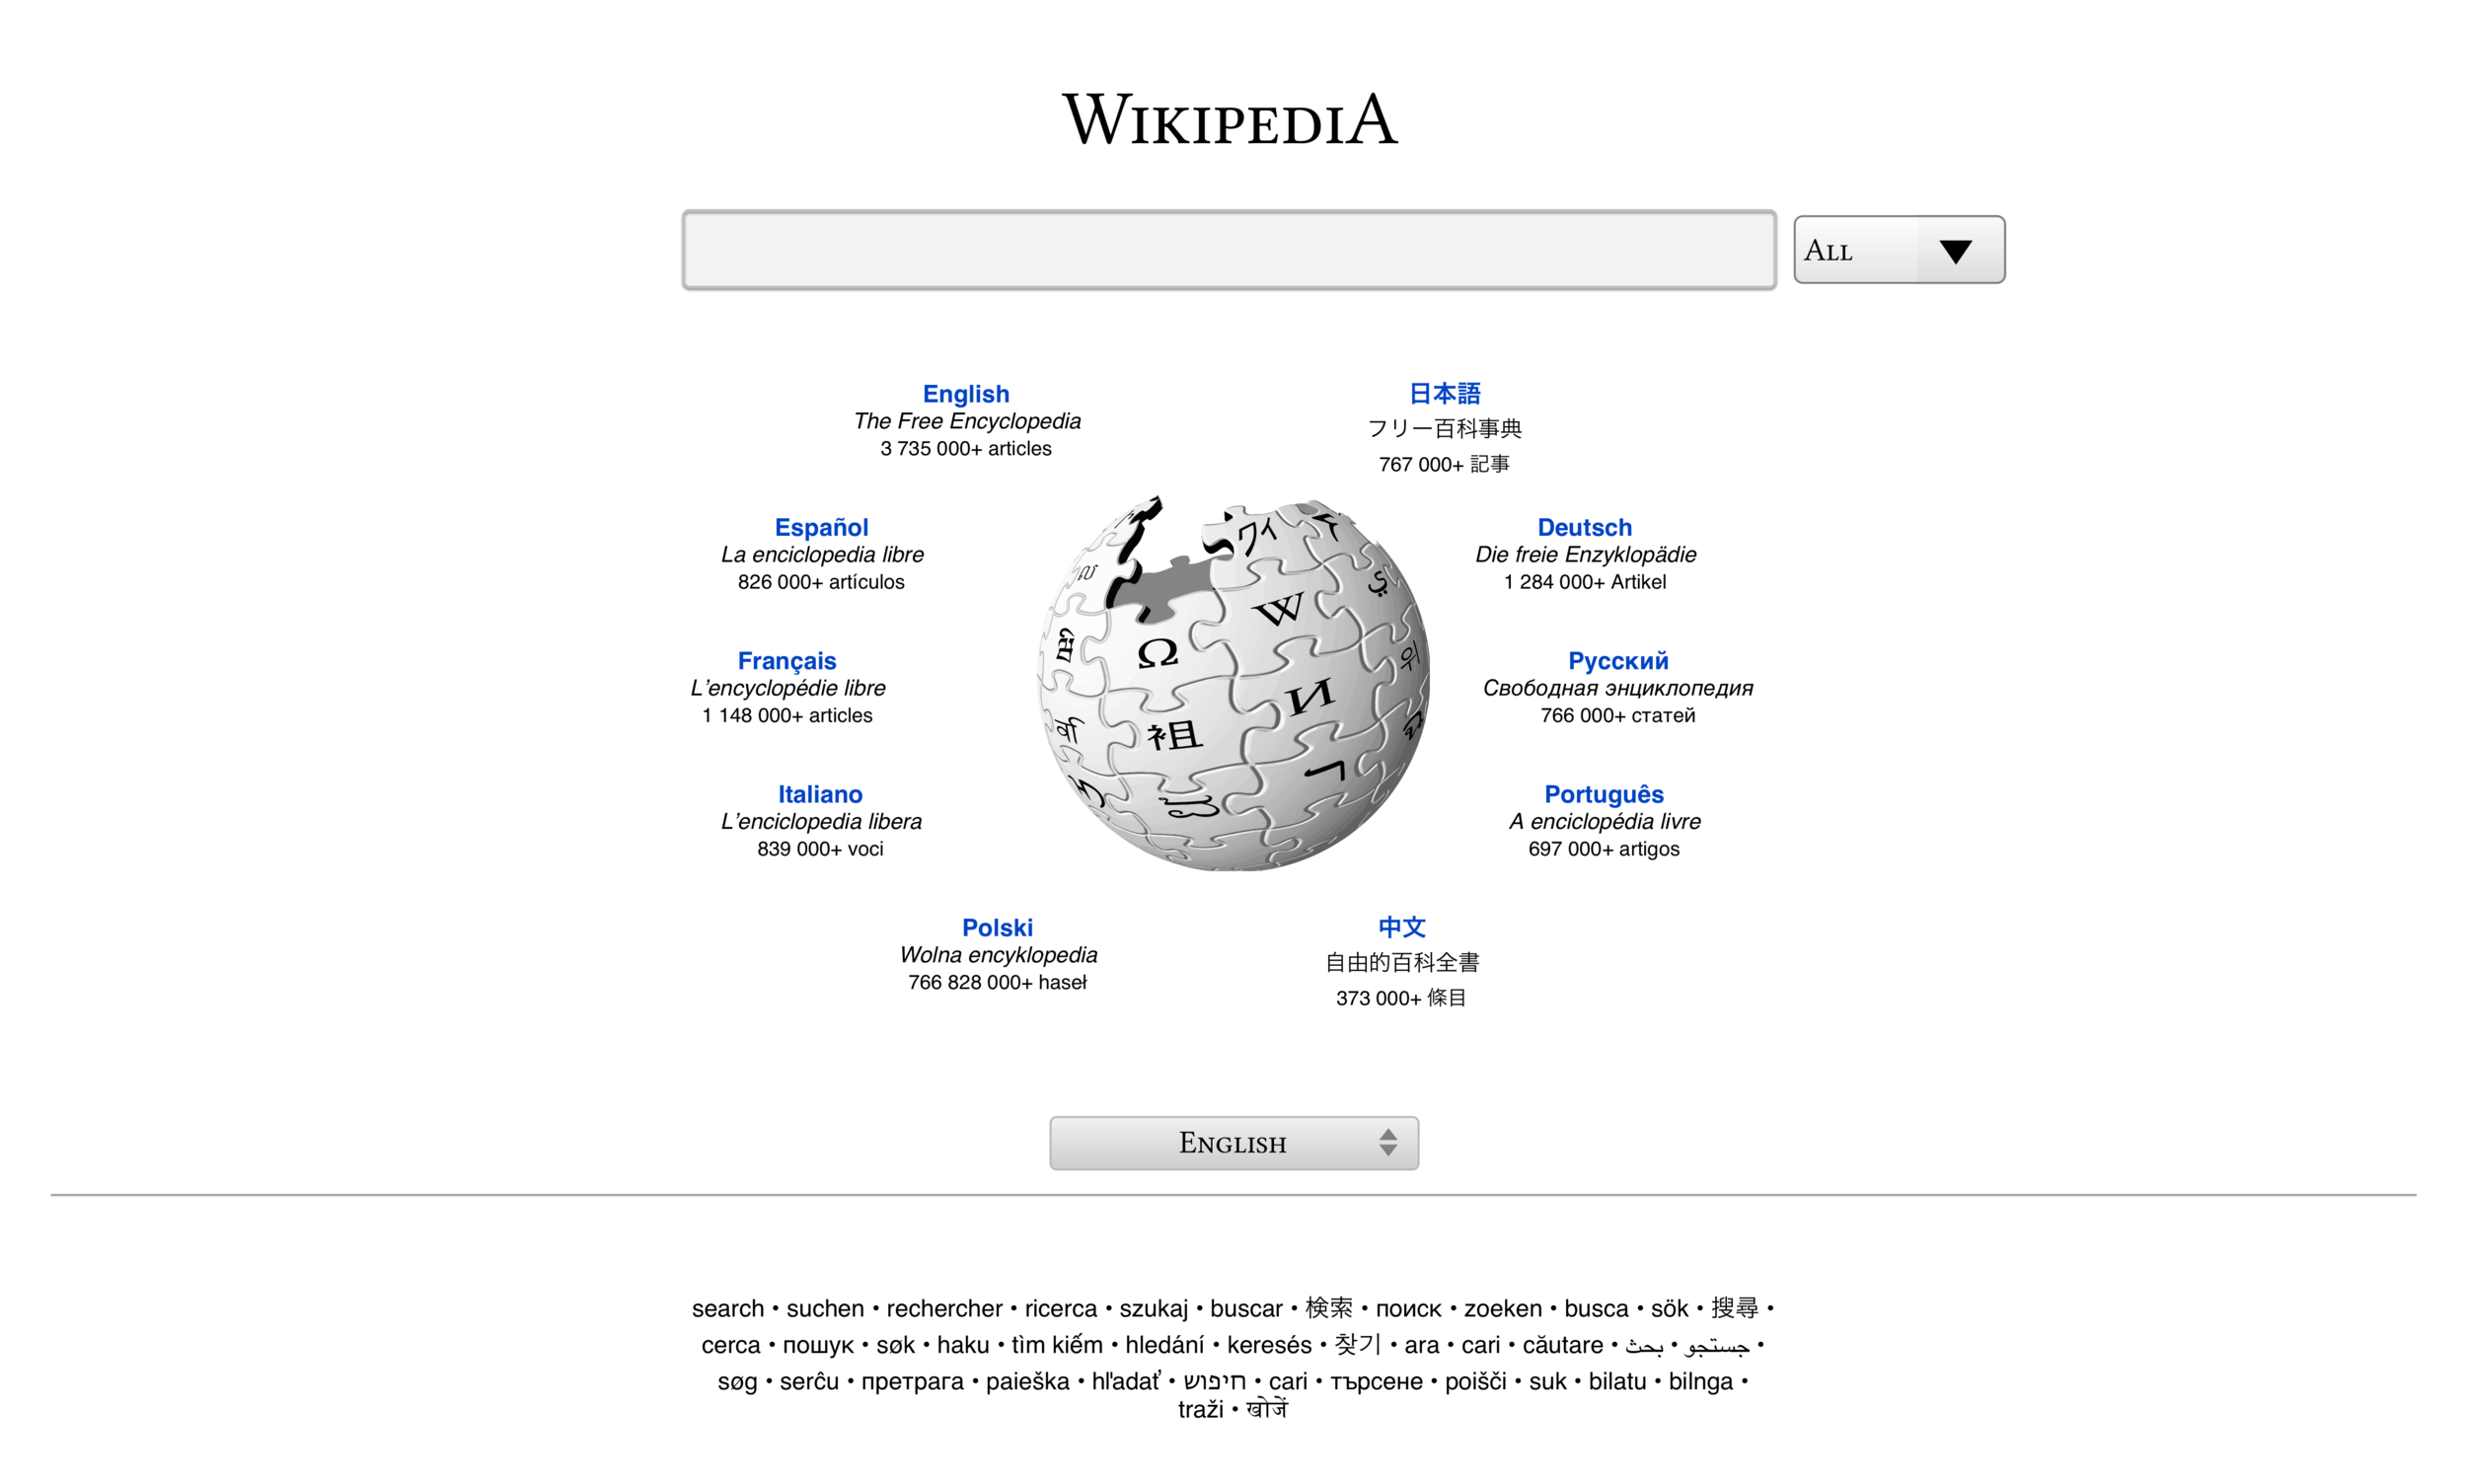 wikipedia.org Redesigned